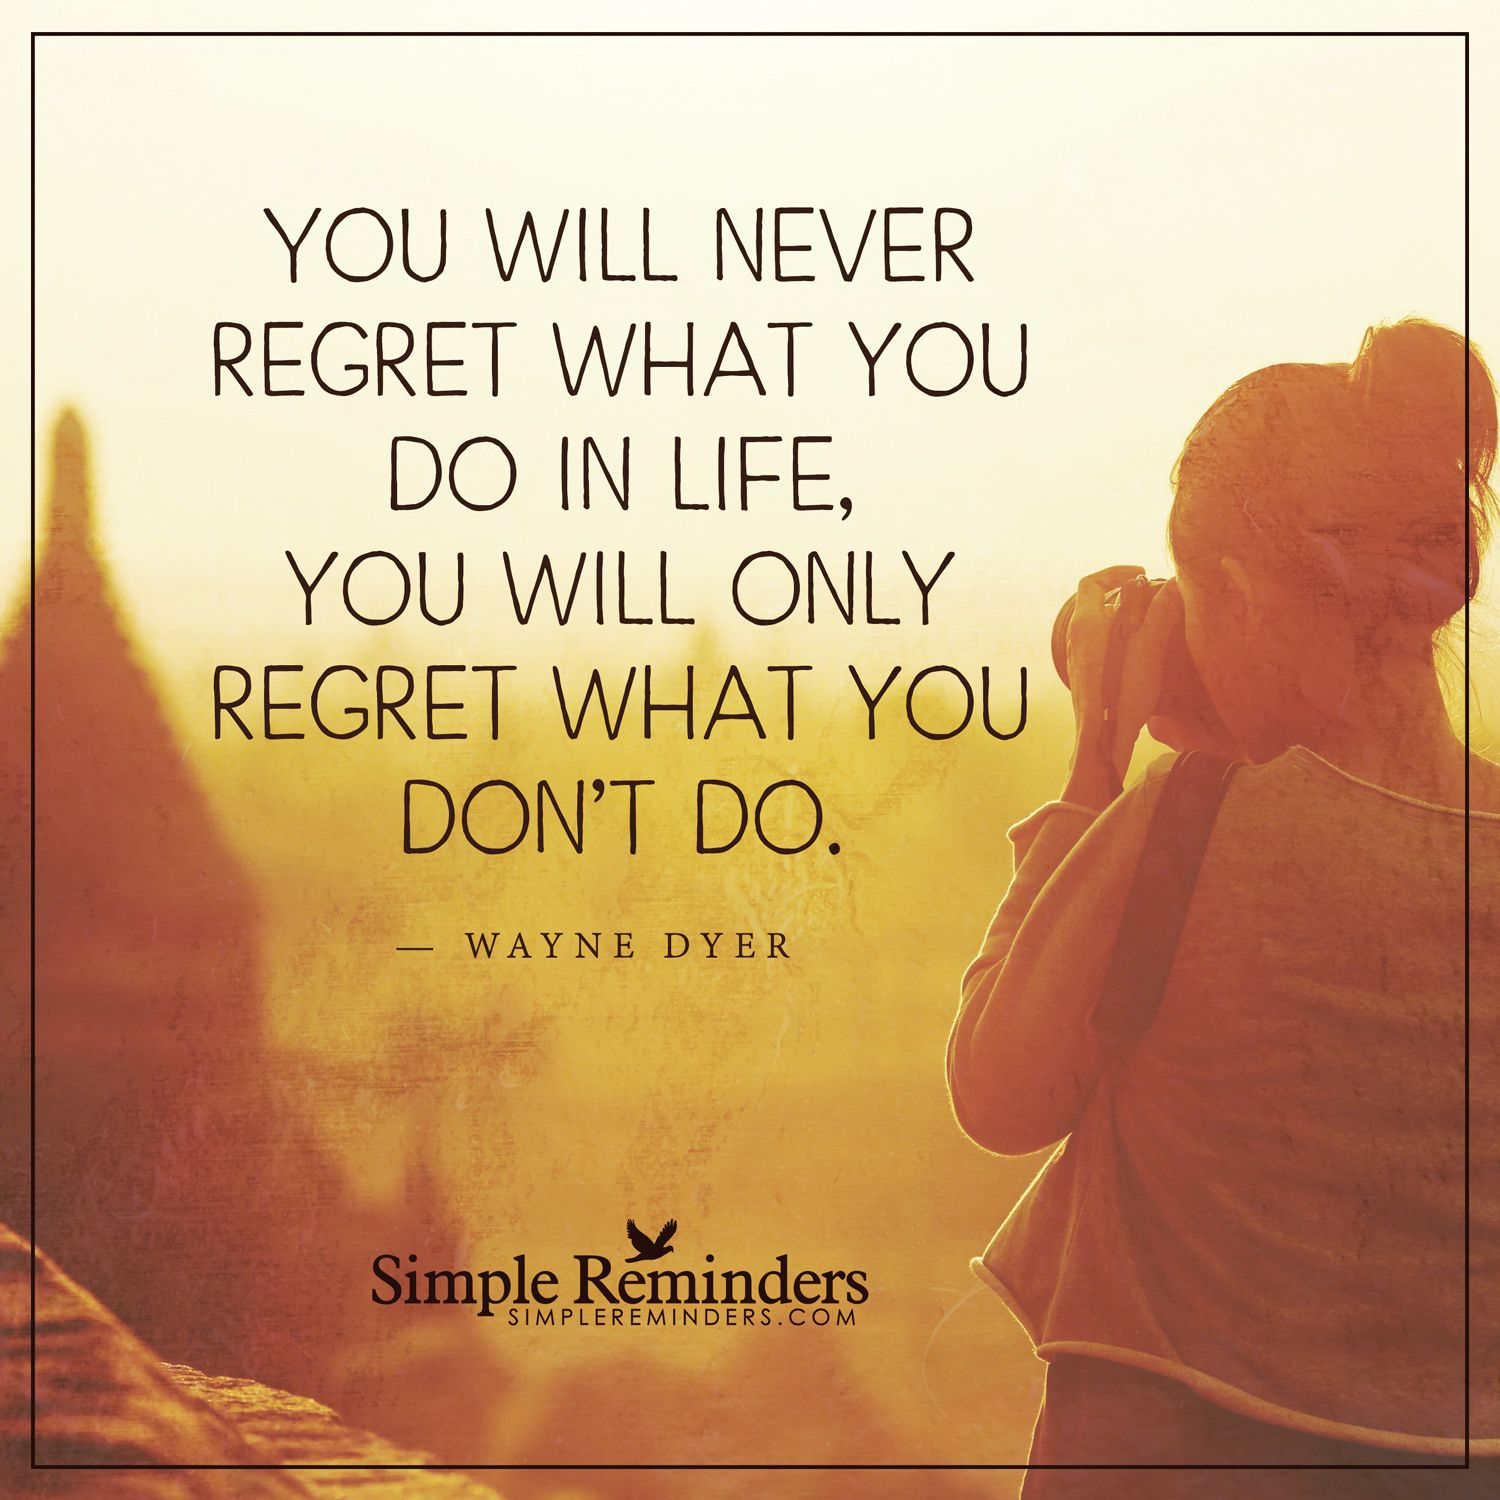 """You will only regret"" by Wayne Dyer"